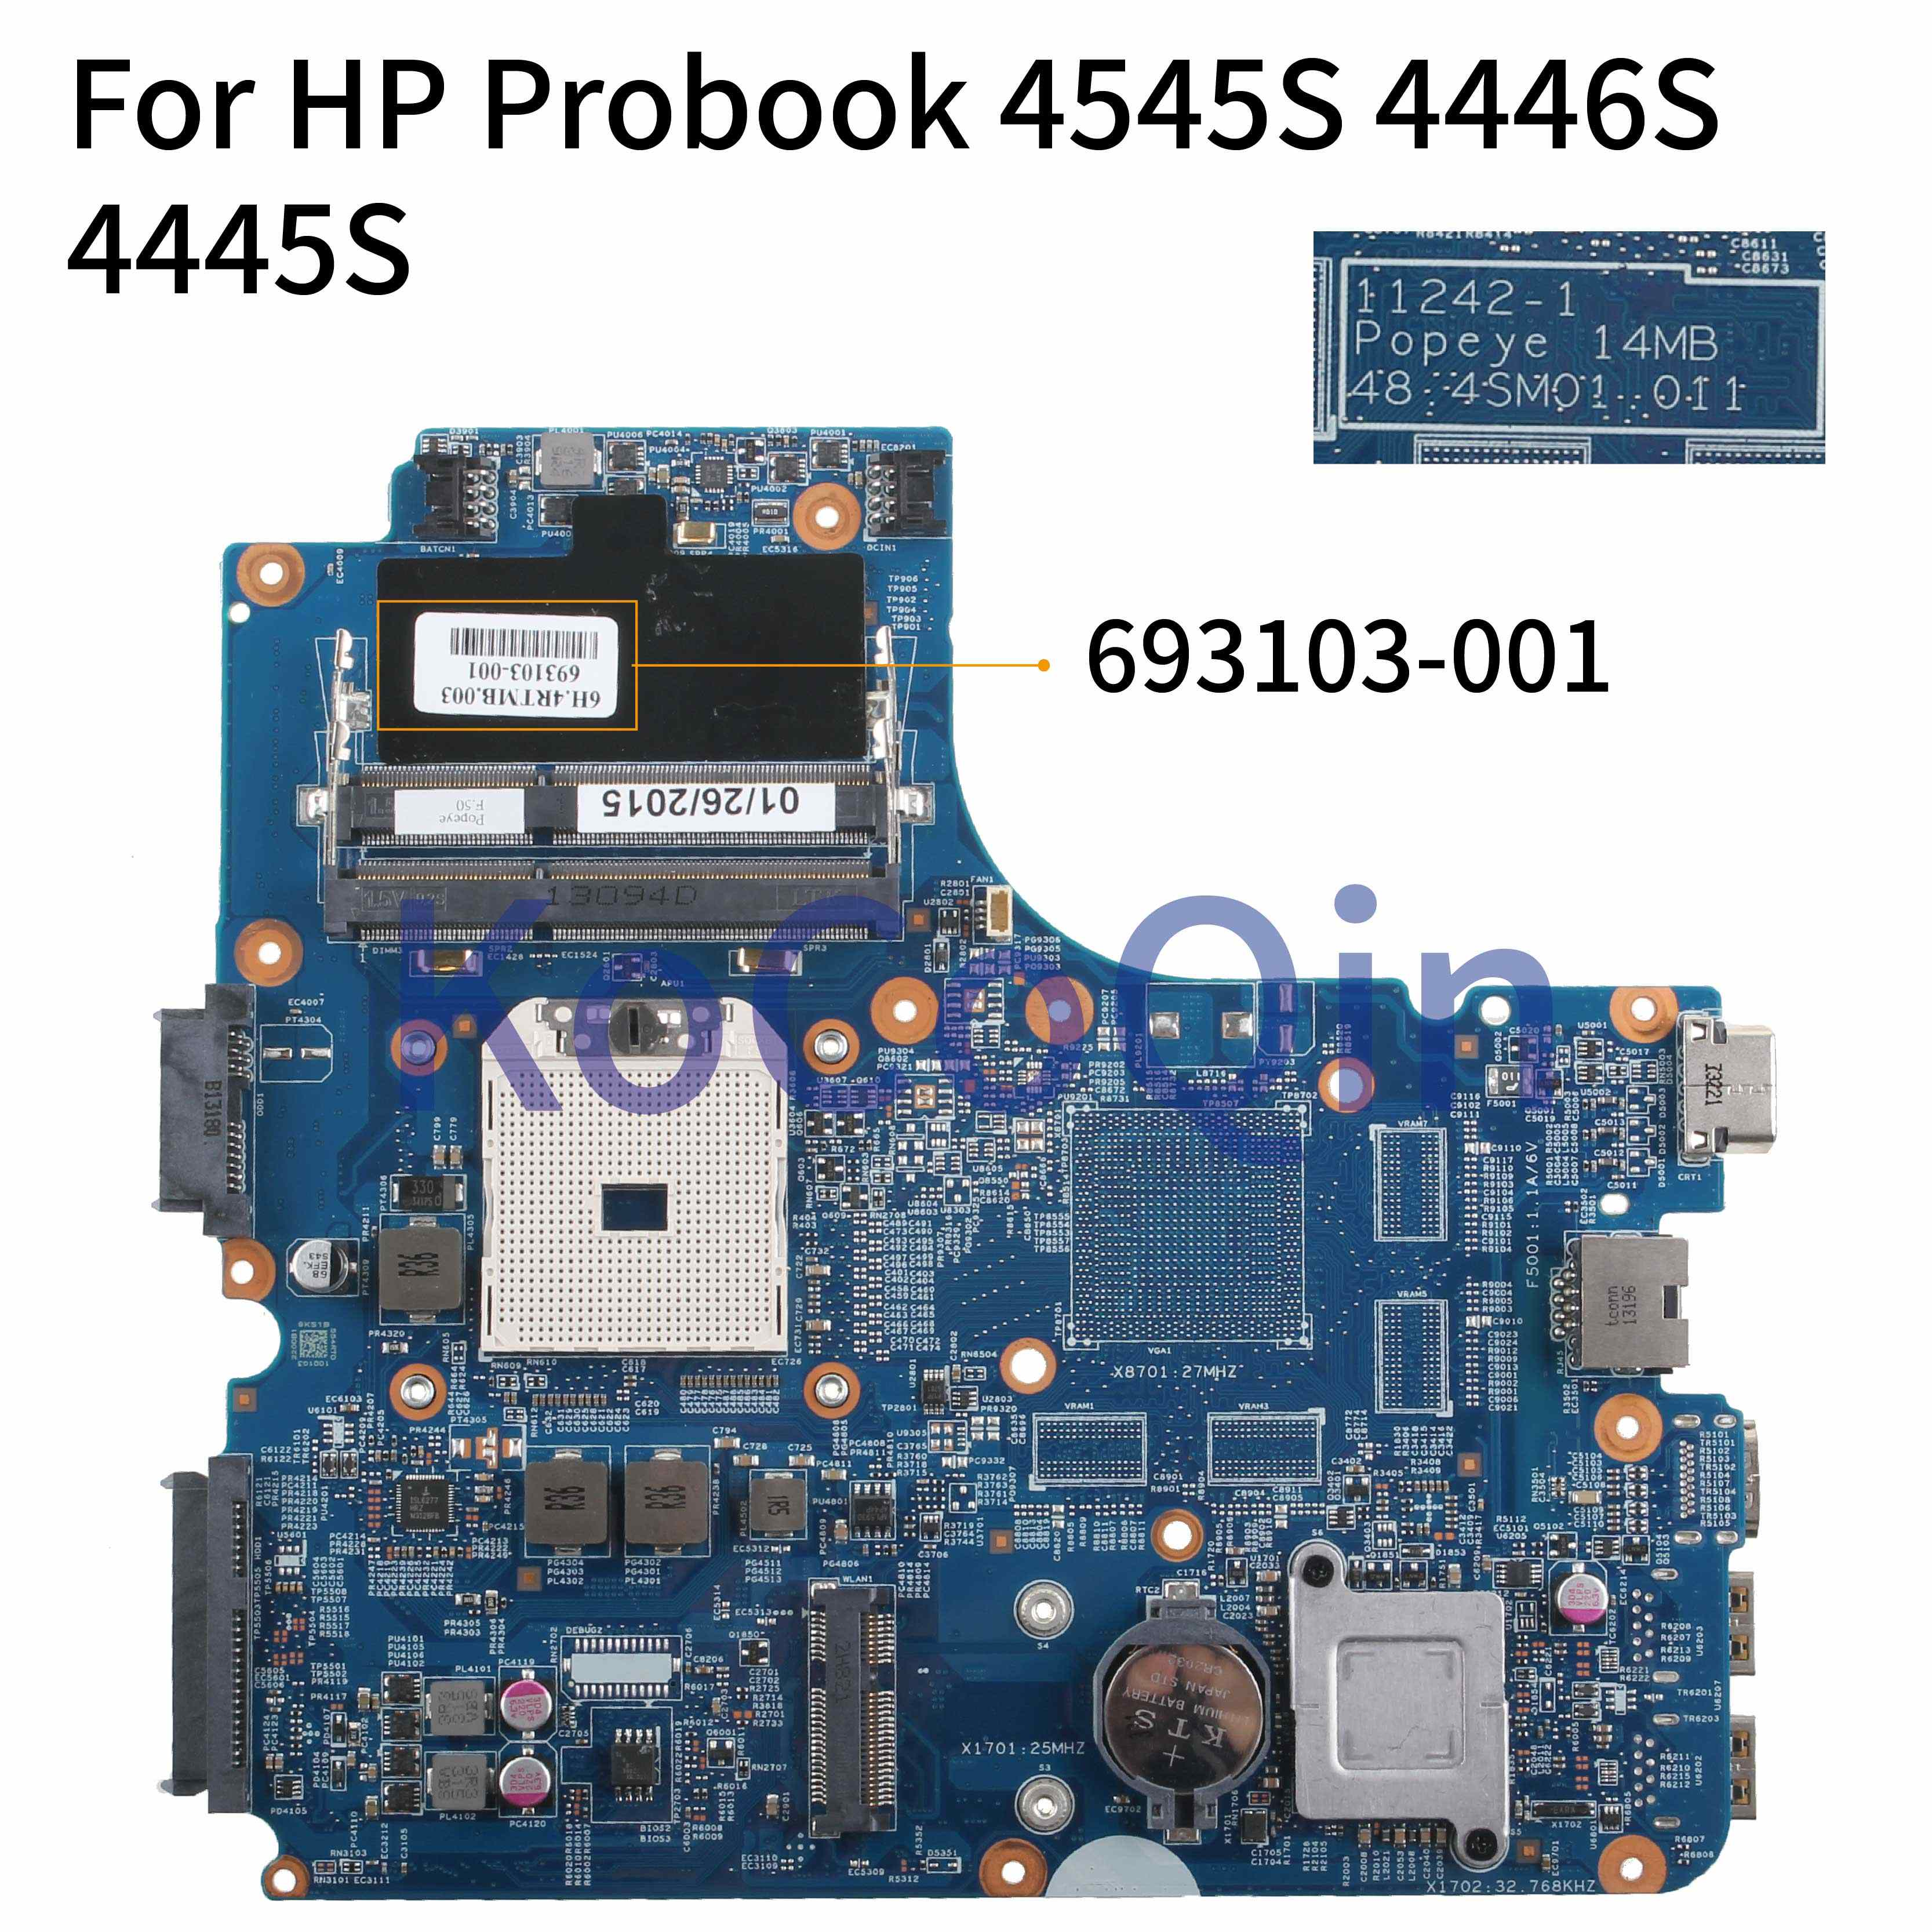 KoCoQin האם מחשב נייד עבור HP Probook 4545S 4445S 4540S 4440S Mainboard 693103-001 693103- 501 11242-1 48.4SM01.011 AMD